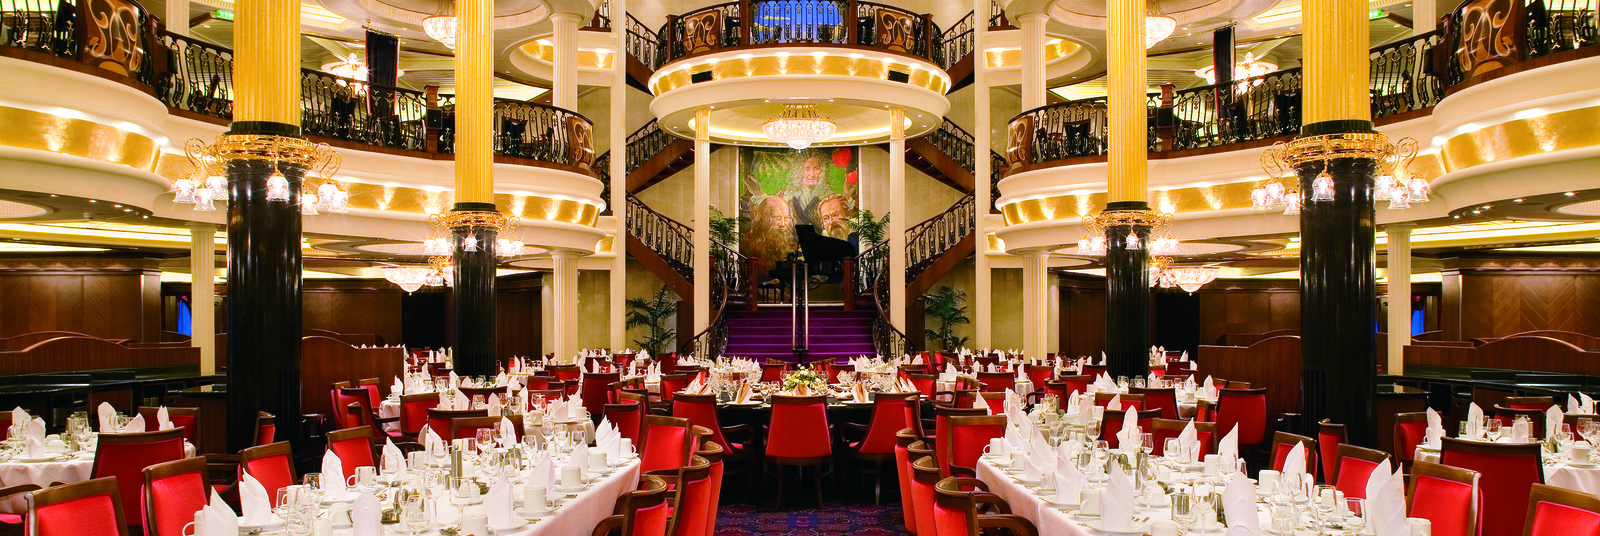 Glamorous Royal Caribbean Dress Code Dining Room Contemporary Best